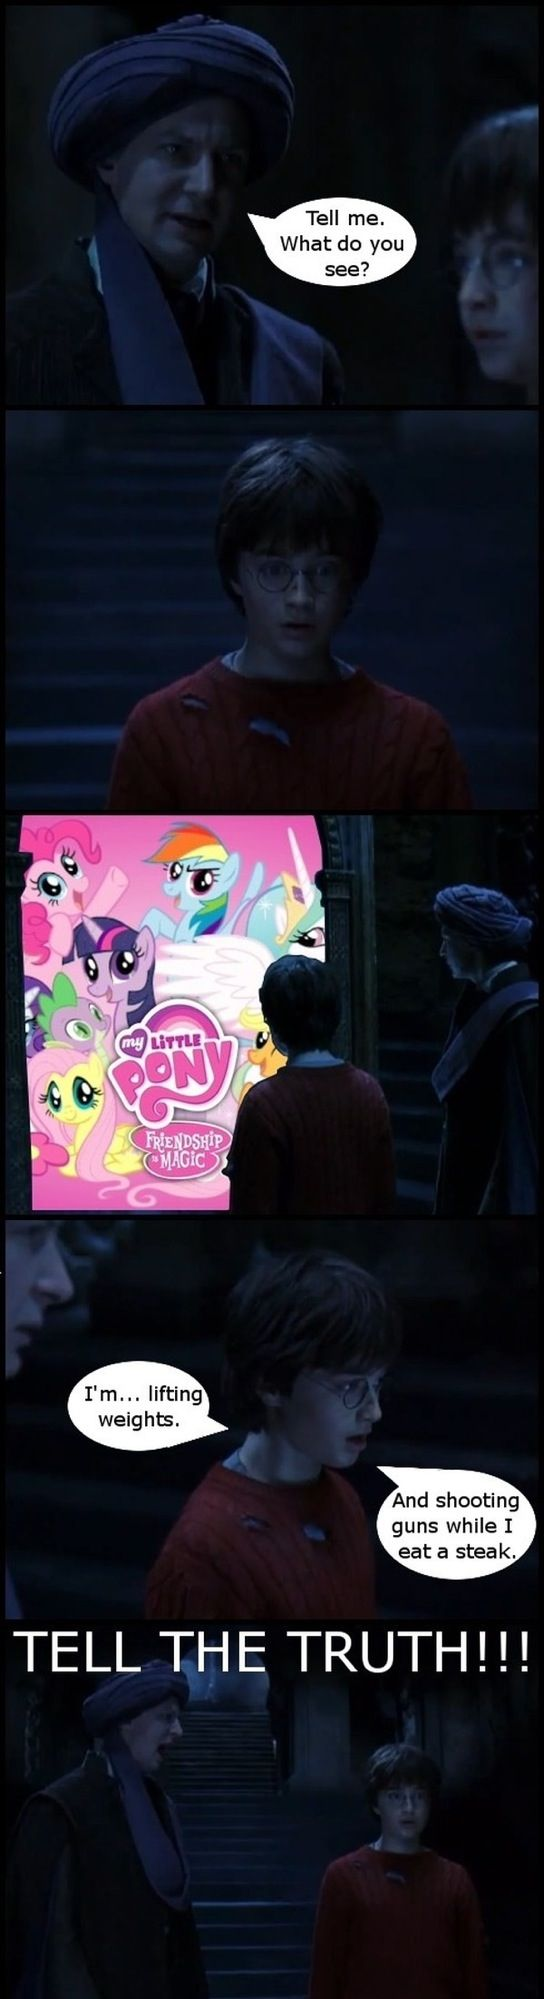 Hehe I guess this could go into mlp and Harry potter memes but I still love it!